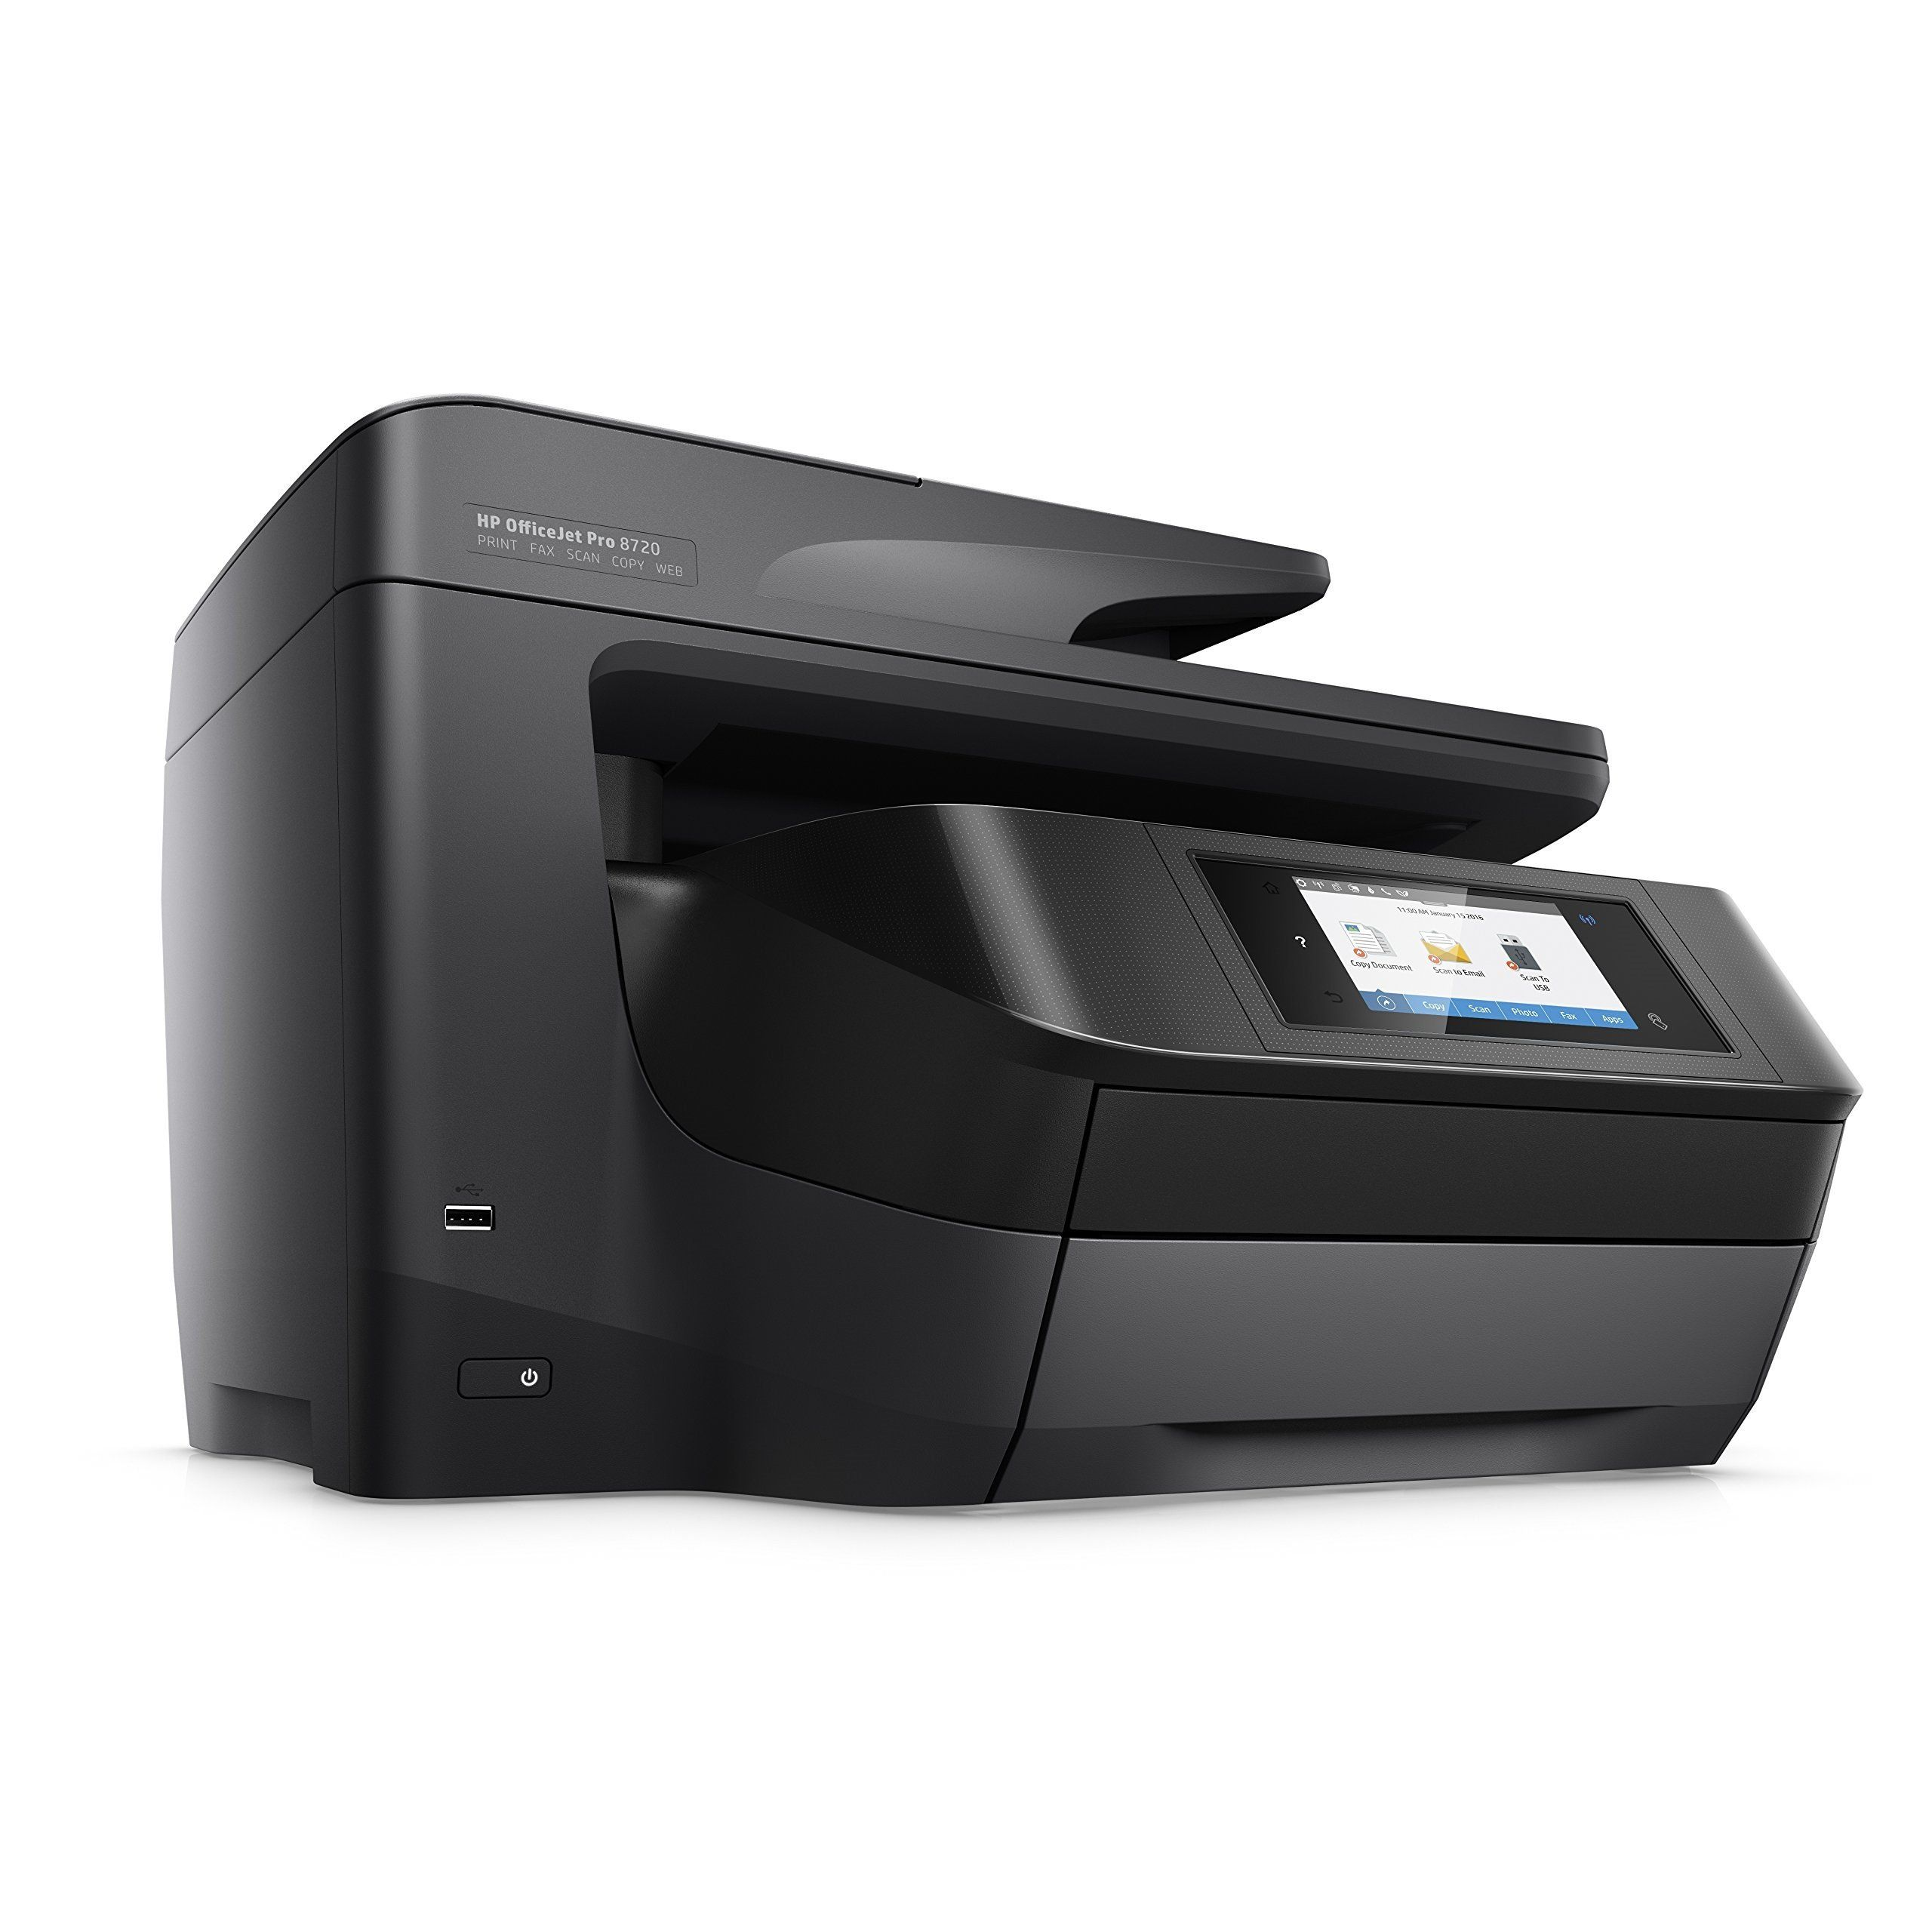 Hp Officejet Pro 8720 Allinone Wireless Printer With Mobile Printing Hp Instant Ink And Amazon Dash Replenishm Hp Instant Ink Wireless Printer Hp Officejet Pro